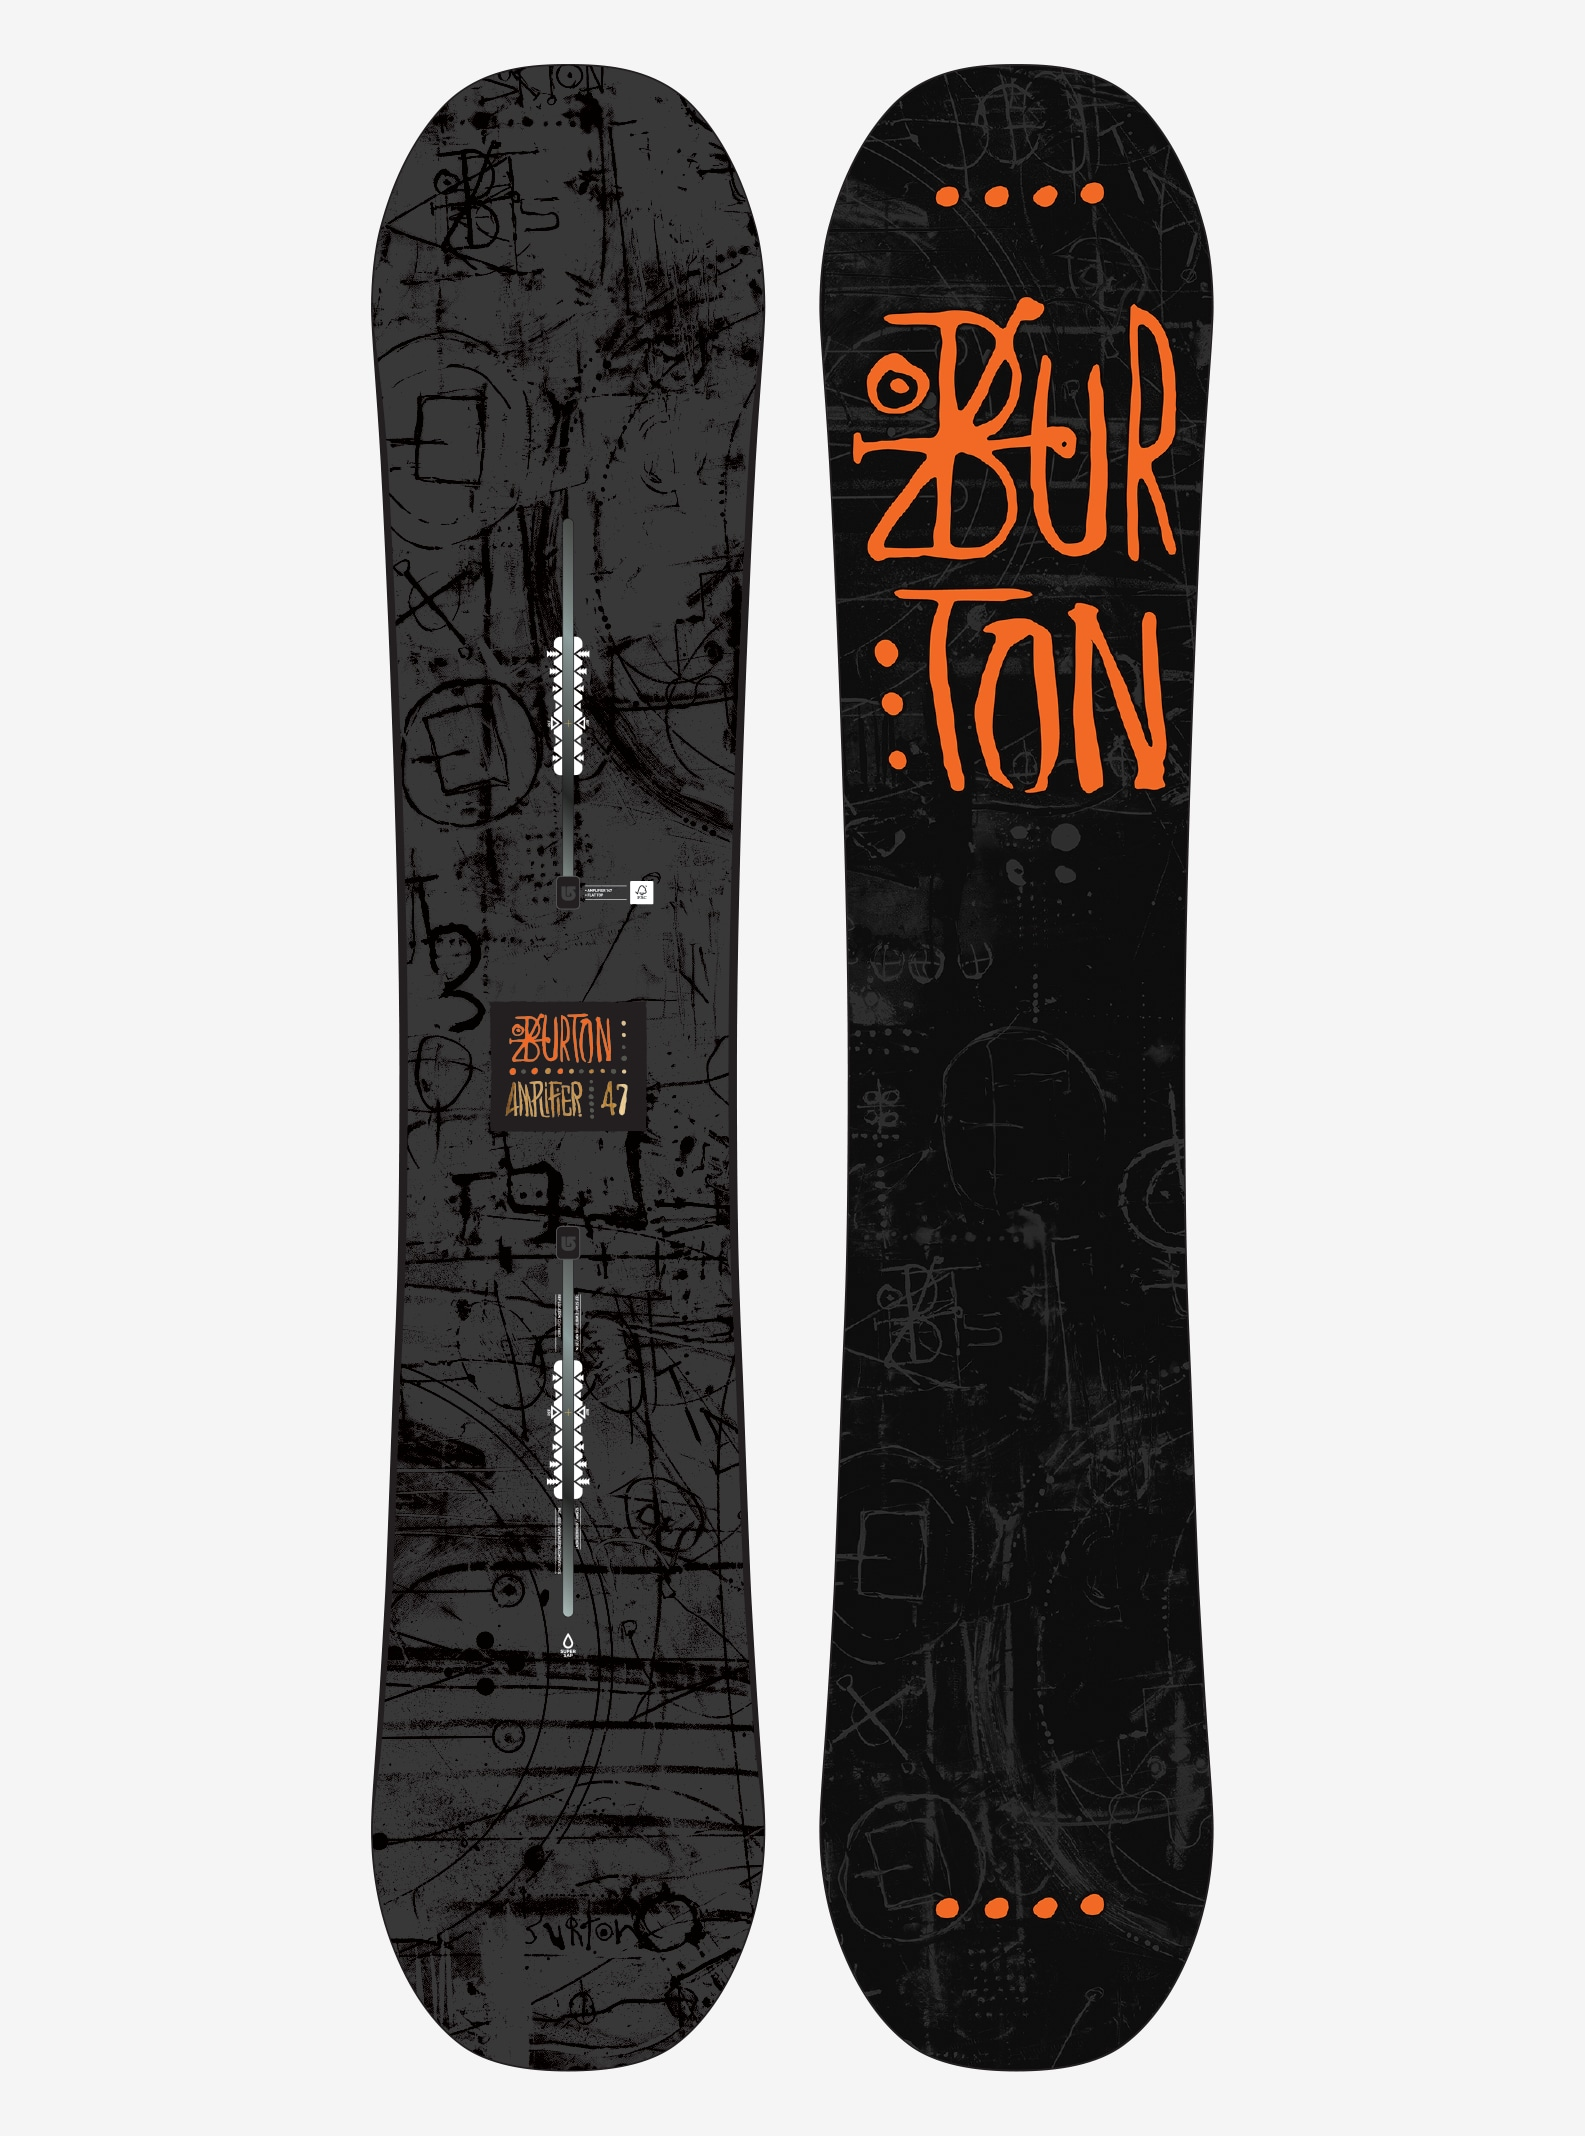 Men's Burton Amplifier Snowboard shown in 147